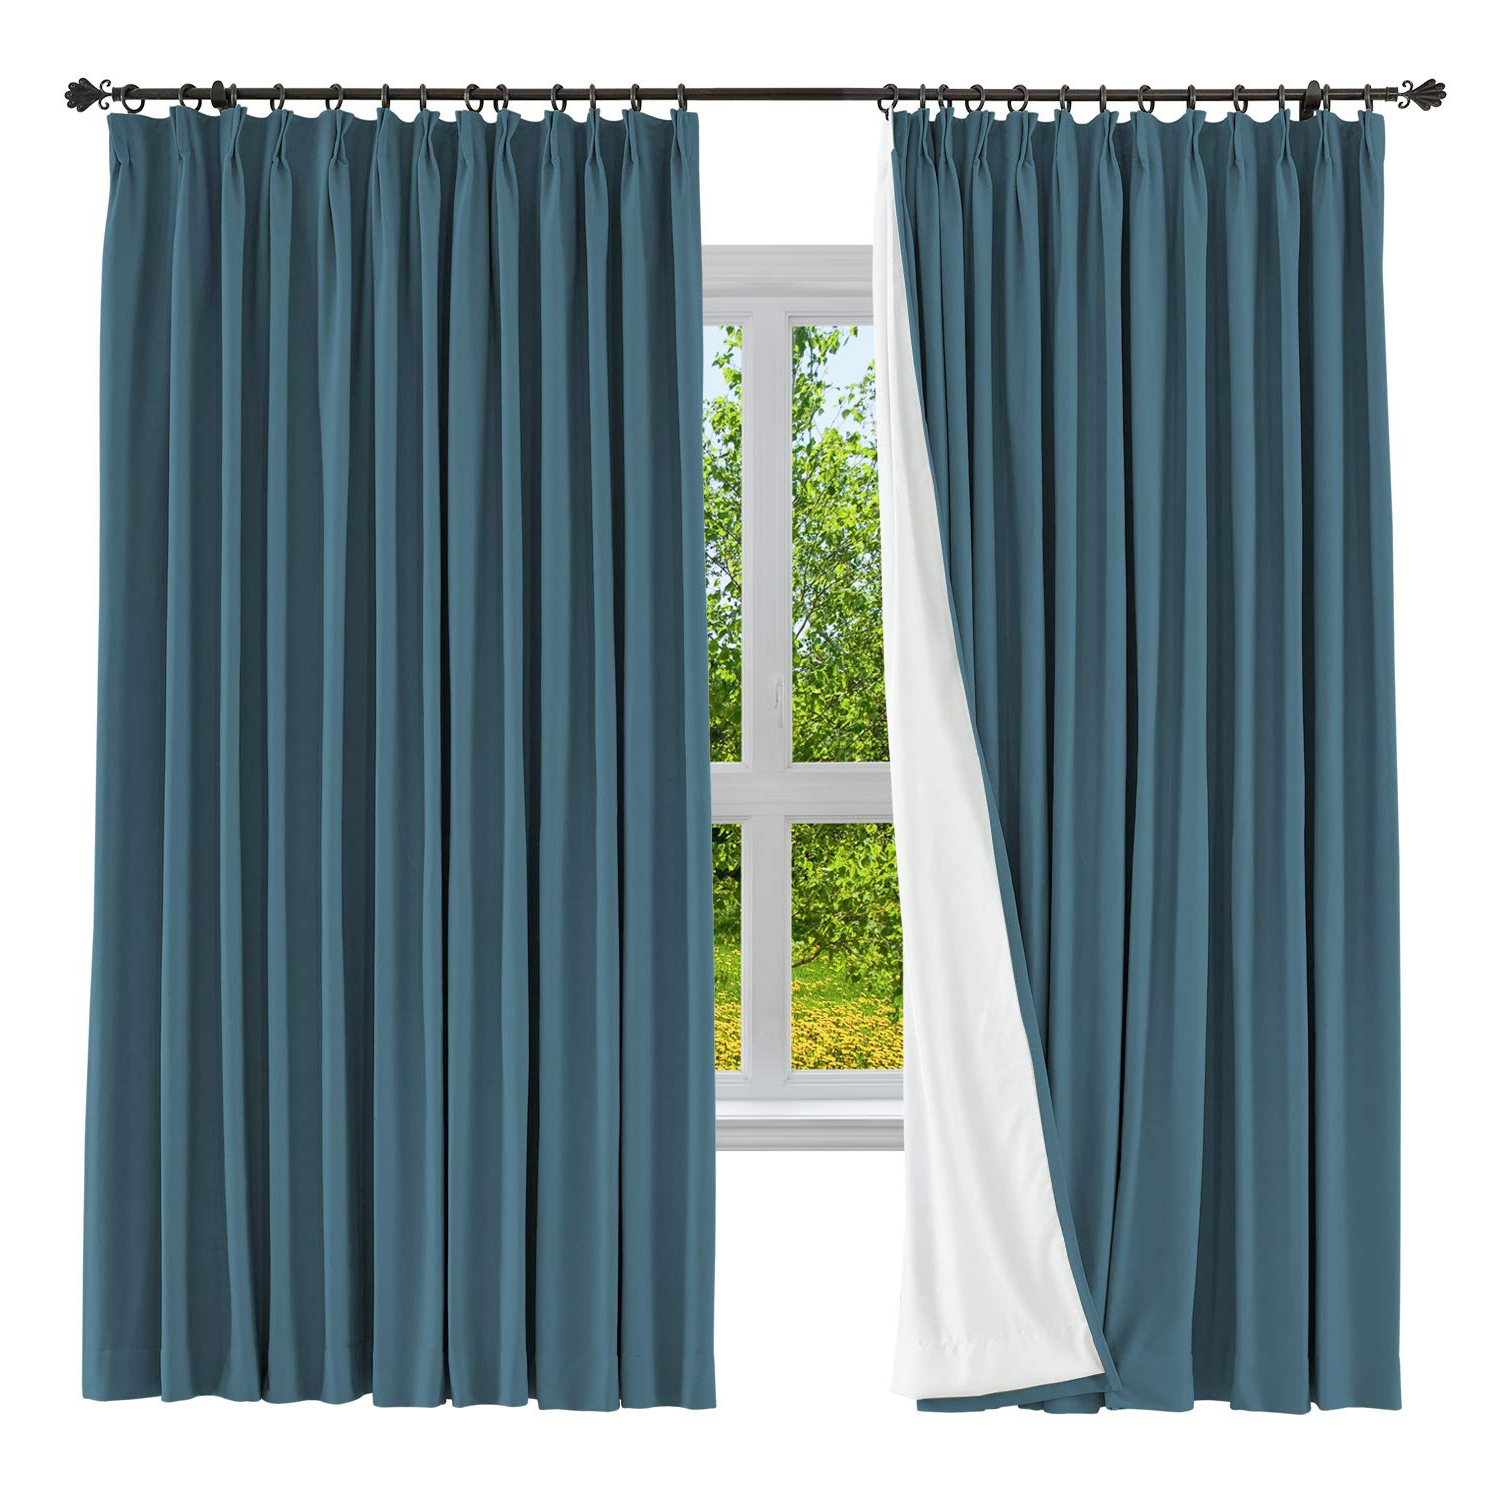 """Cololeaf Blackout Curtain Linen Cotton Drapery Blackout Solid Pinch Pleated Curtain For Bedroom Living Room Family Room, 84"""" W X 84"""" L (dark Blue, 1 Throughout Widely Used Solid Cotton Pleated Curtains (View 6 of 20)"""